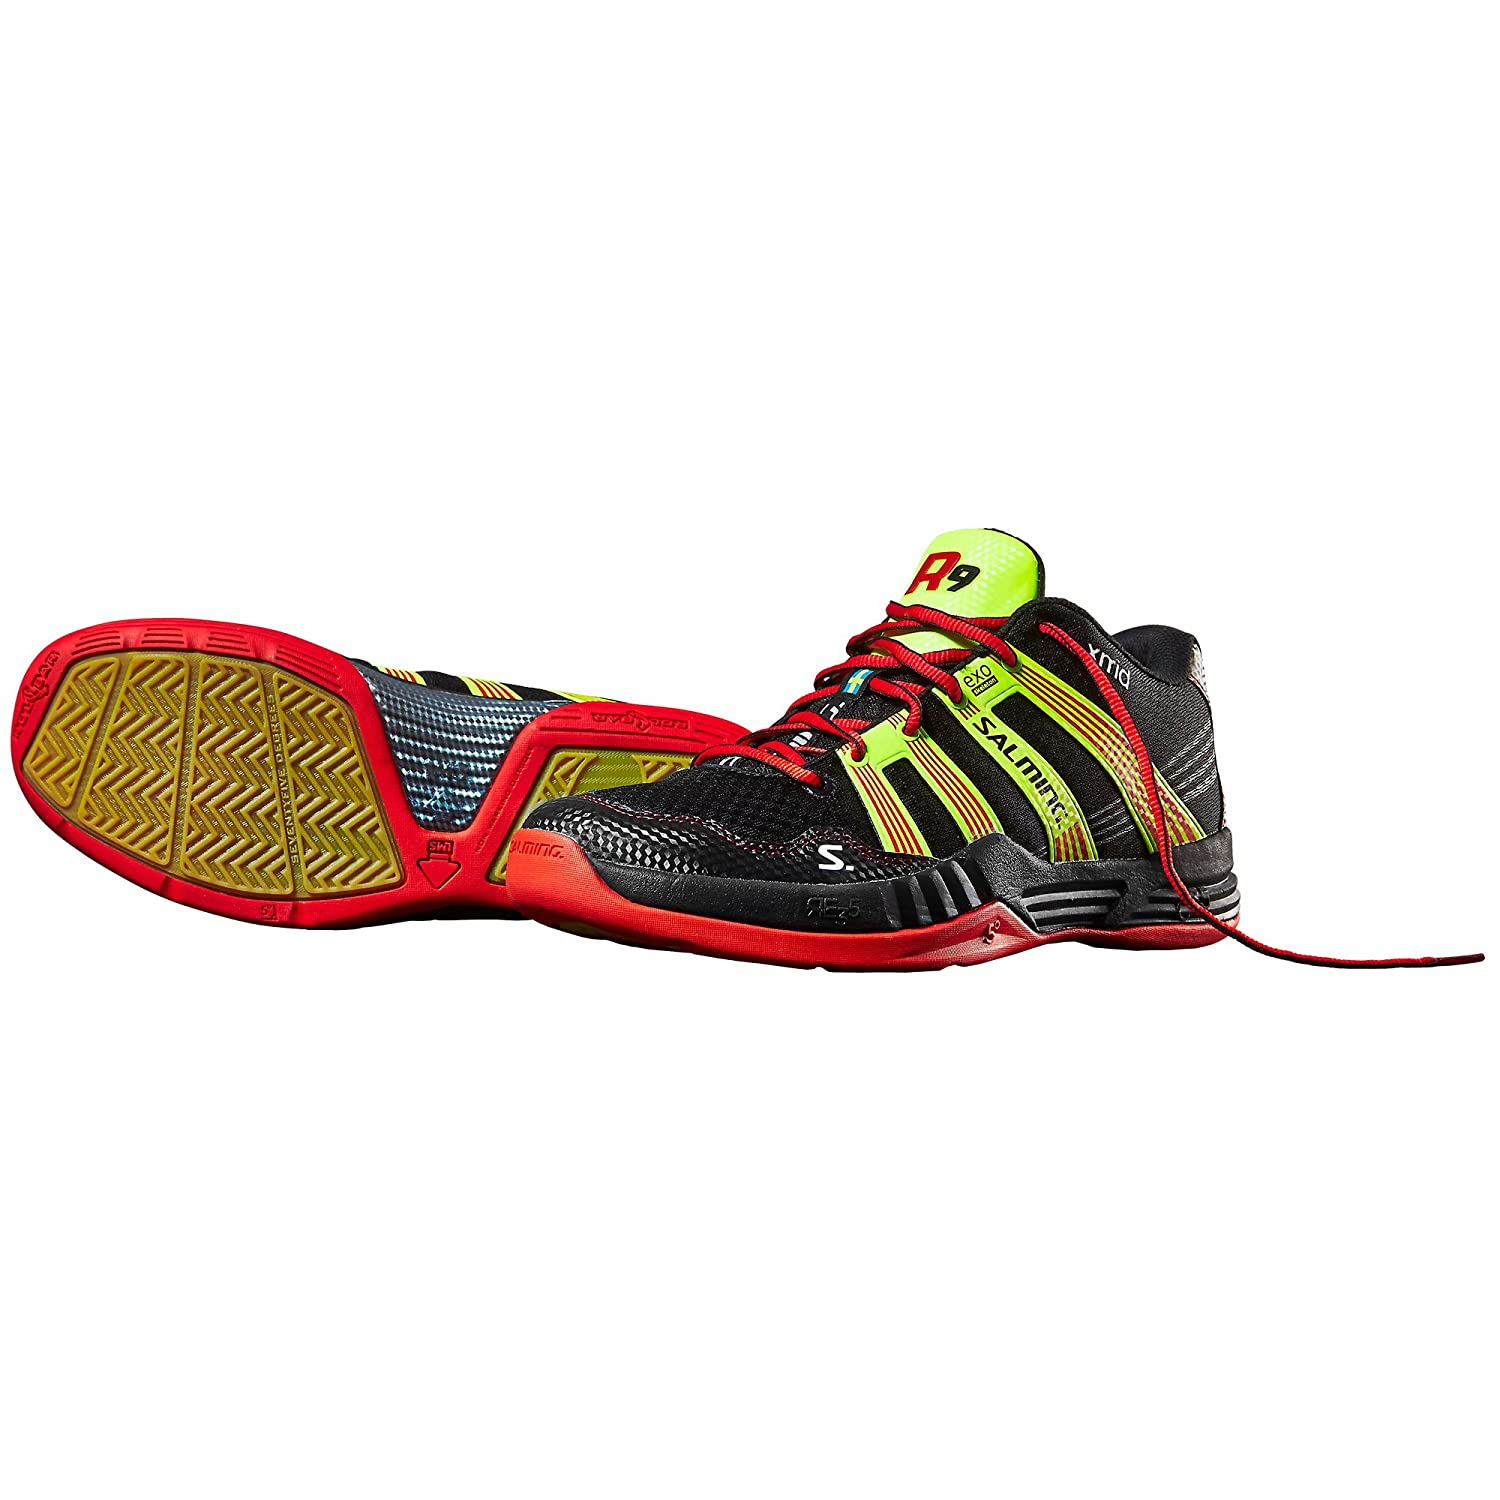 Salming Race R9 Mid 3.0 Mens Court Shoes, Shoe Size- 10 UK: Amazon.co.uk:  Sports & Outdoors